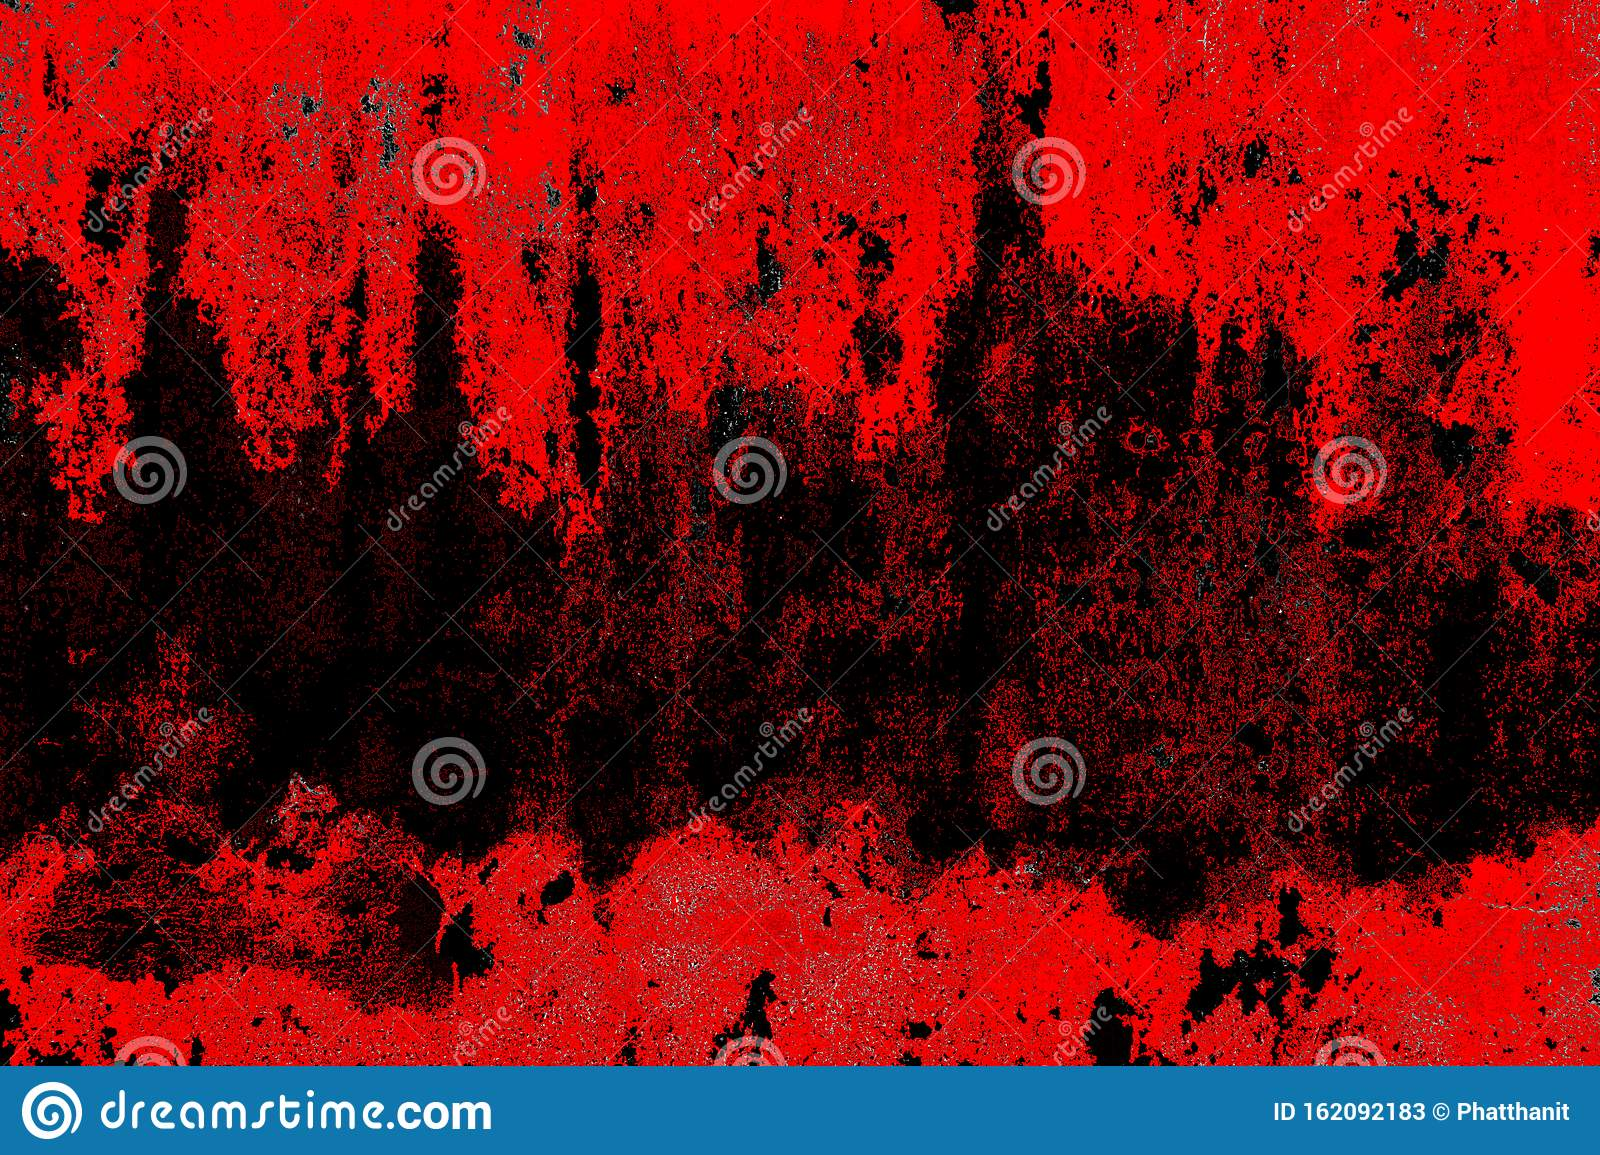 Blood Texture Or Background Concrete Wall With Bloody Red Stains For Halloween Stock Image Image Of Halloween Background 162092183 Cartoon fake blood red paint dripping down orange wall. https www dreamstime com blood texture background concrete wall bloody red stains halloween blood texture background concrete wall image162092183